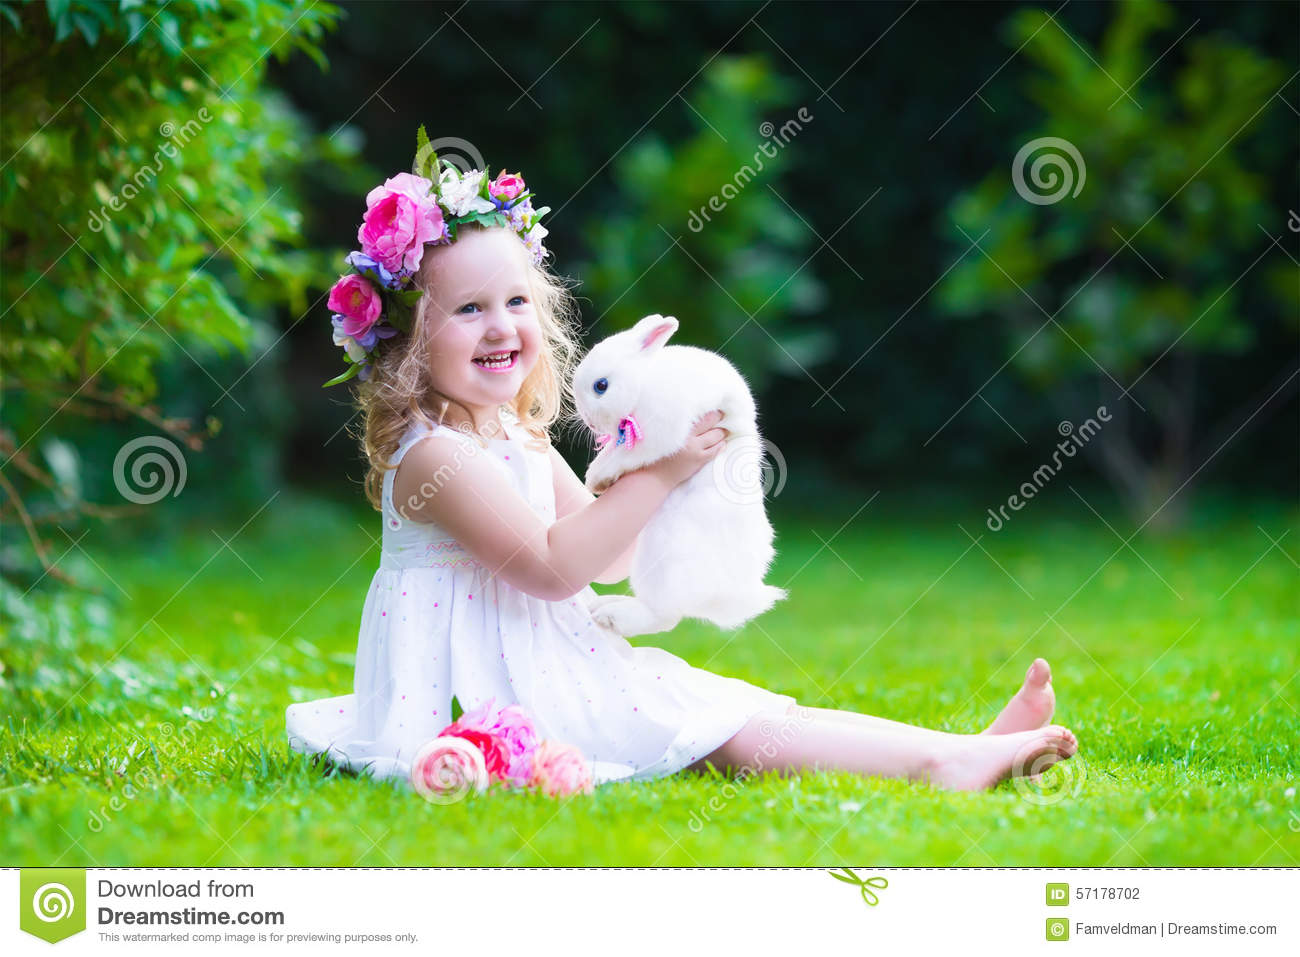 cute girl playing with real bunny stock photo - image of grass